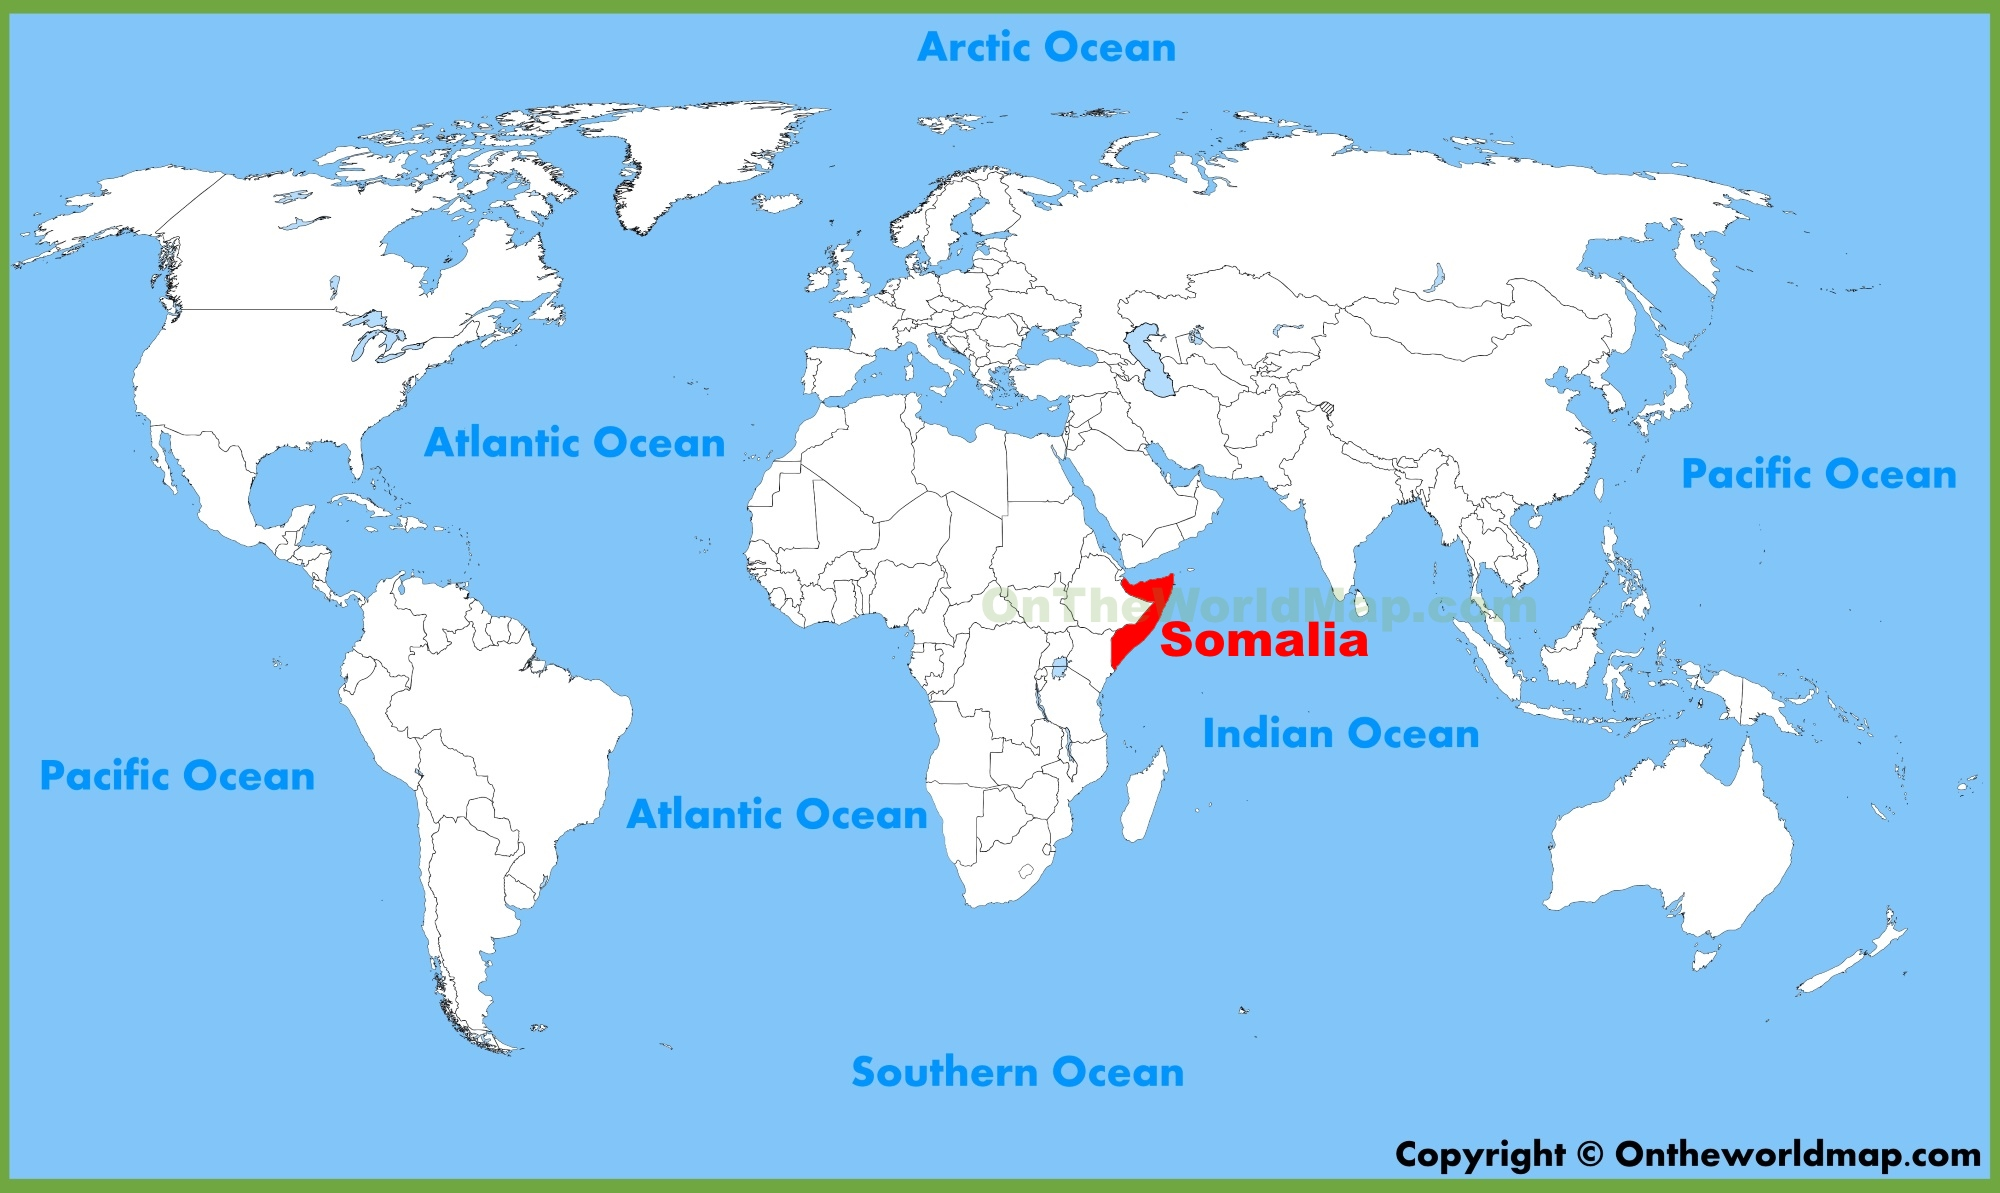 Somalia On Map Somalia location on the World Map Somalia On Map